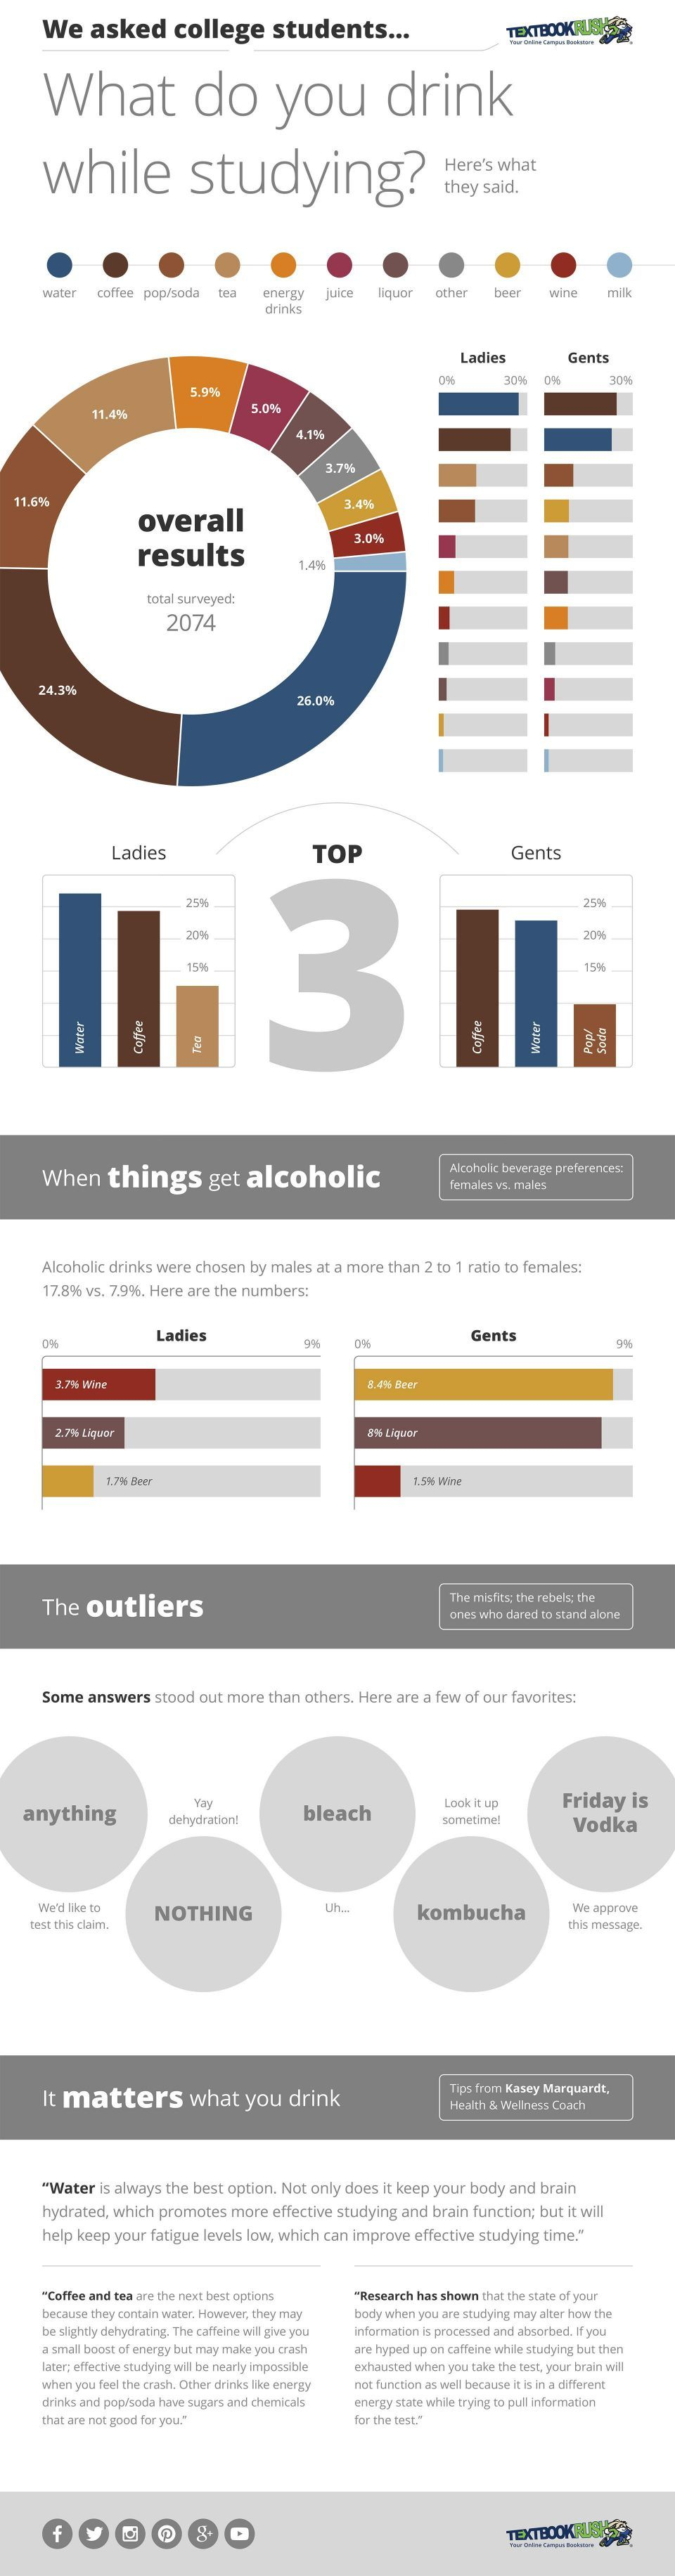 What College Students Drink While Studying Infographic